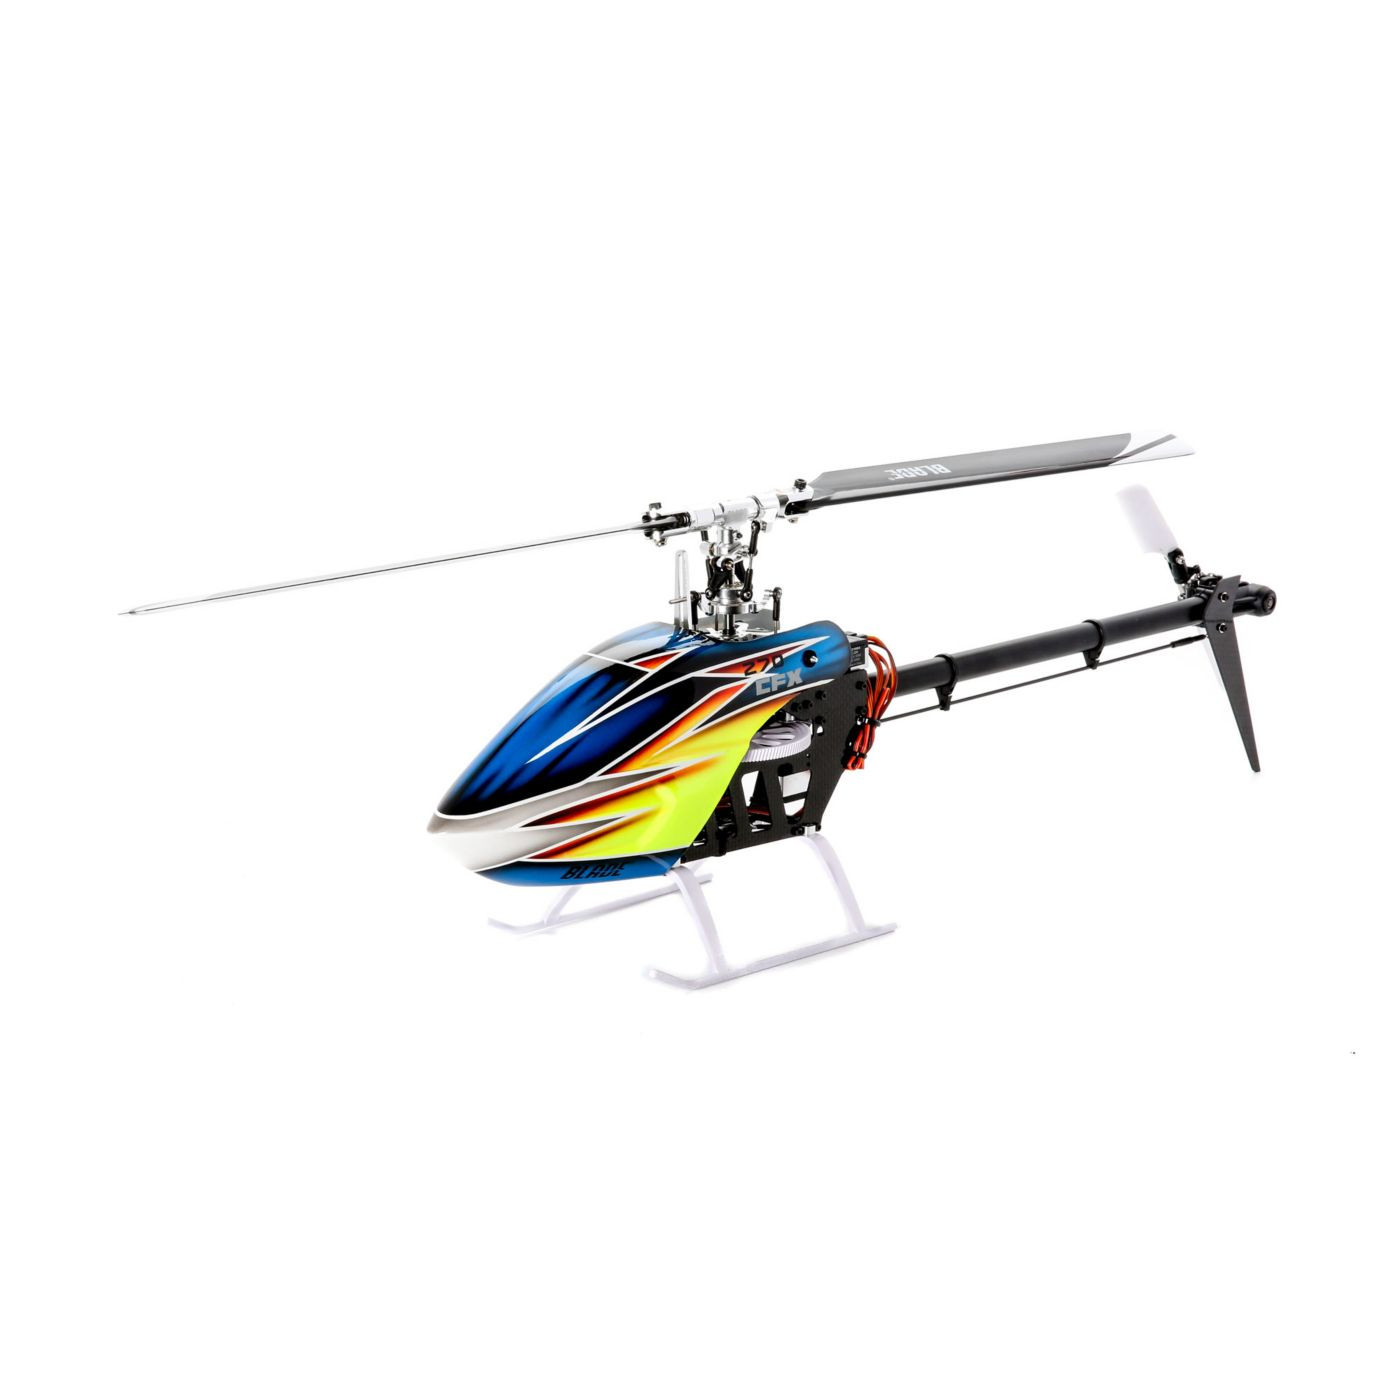 BLH4850 Blade 270 CFX BNF Basic Remote Controlled Hobby